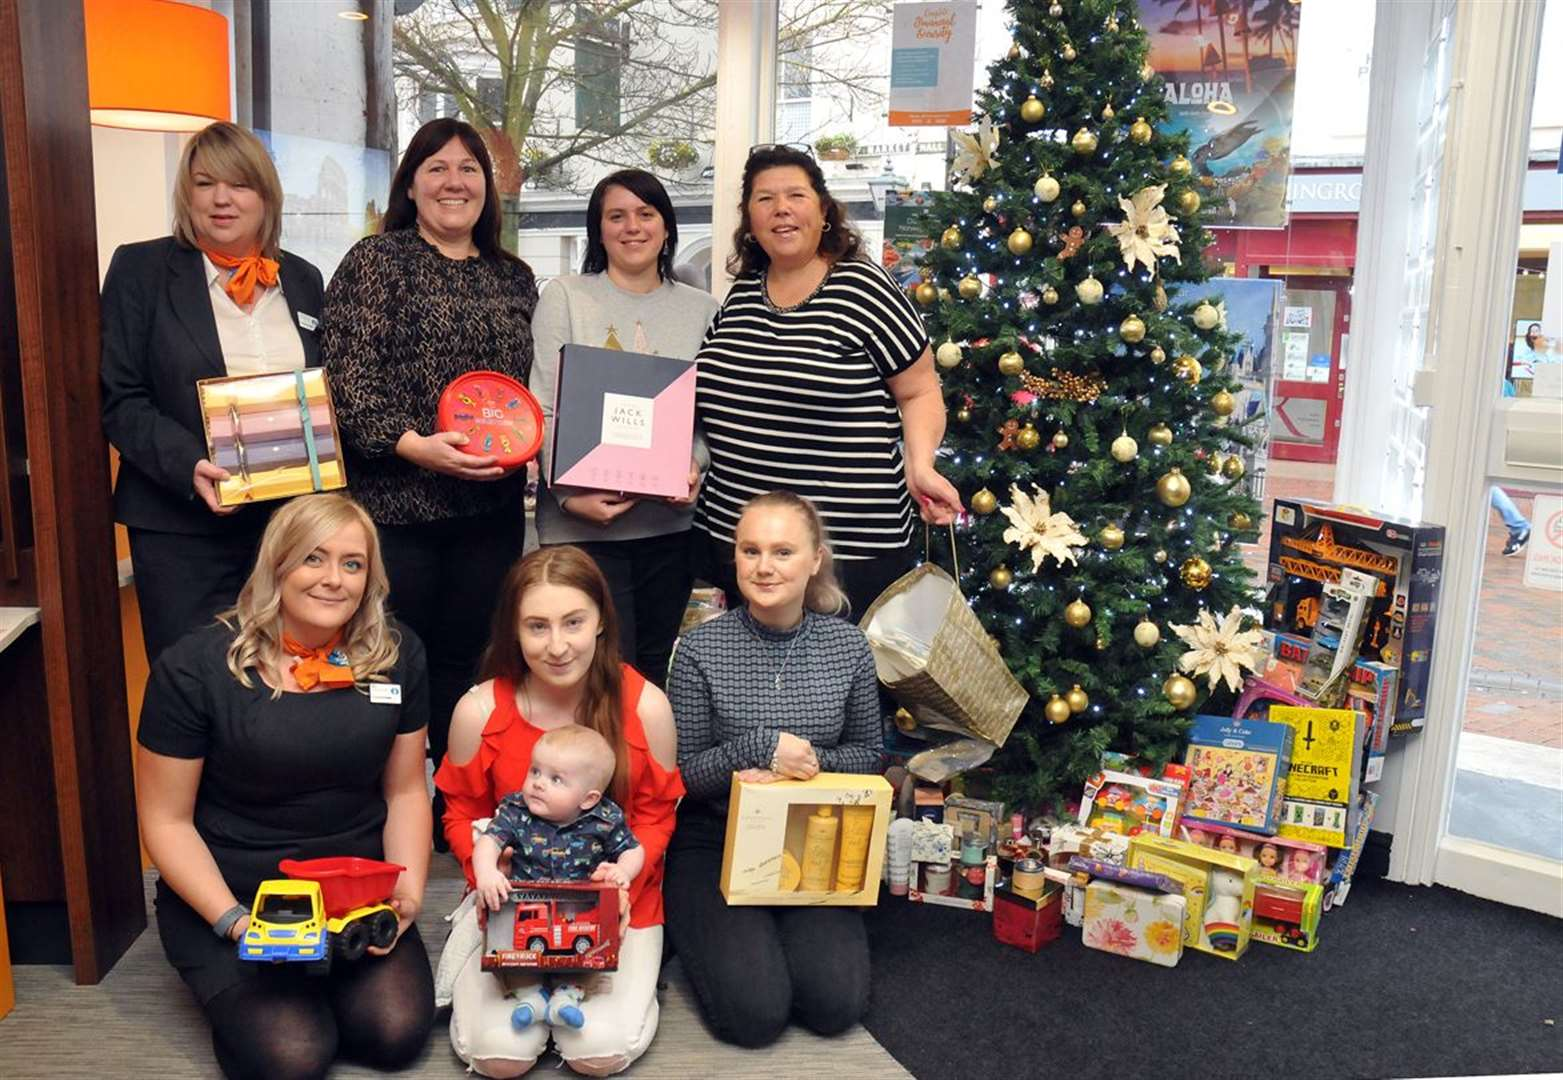 Public digs deep to make Christmas special for homeless mums and babies